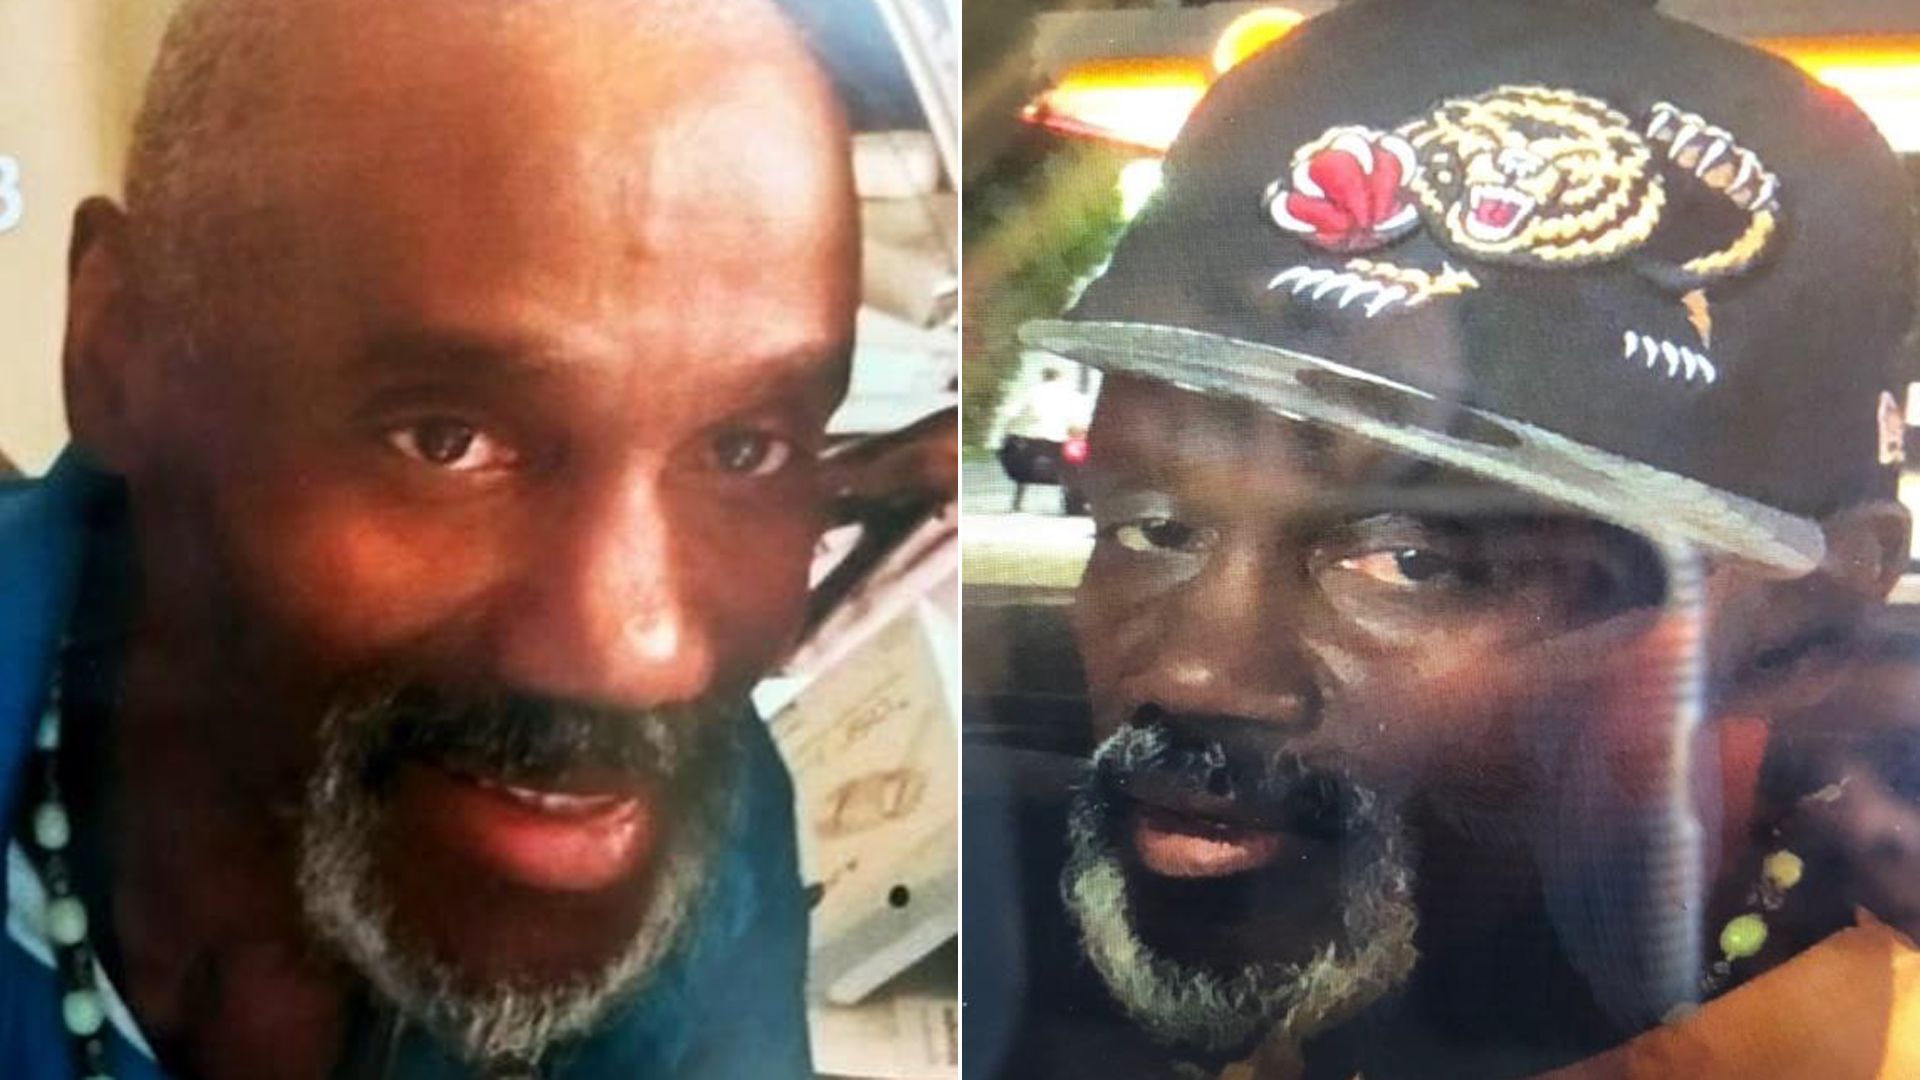 Douglas James is seen in undated photos released Nov. 22, 2019, by the Los Angeles Police Department.